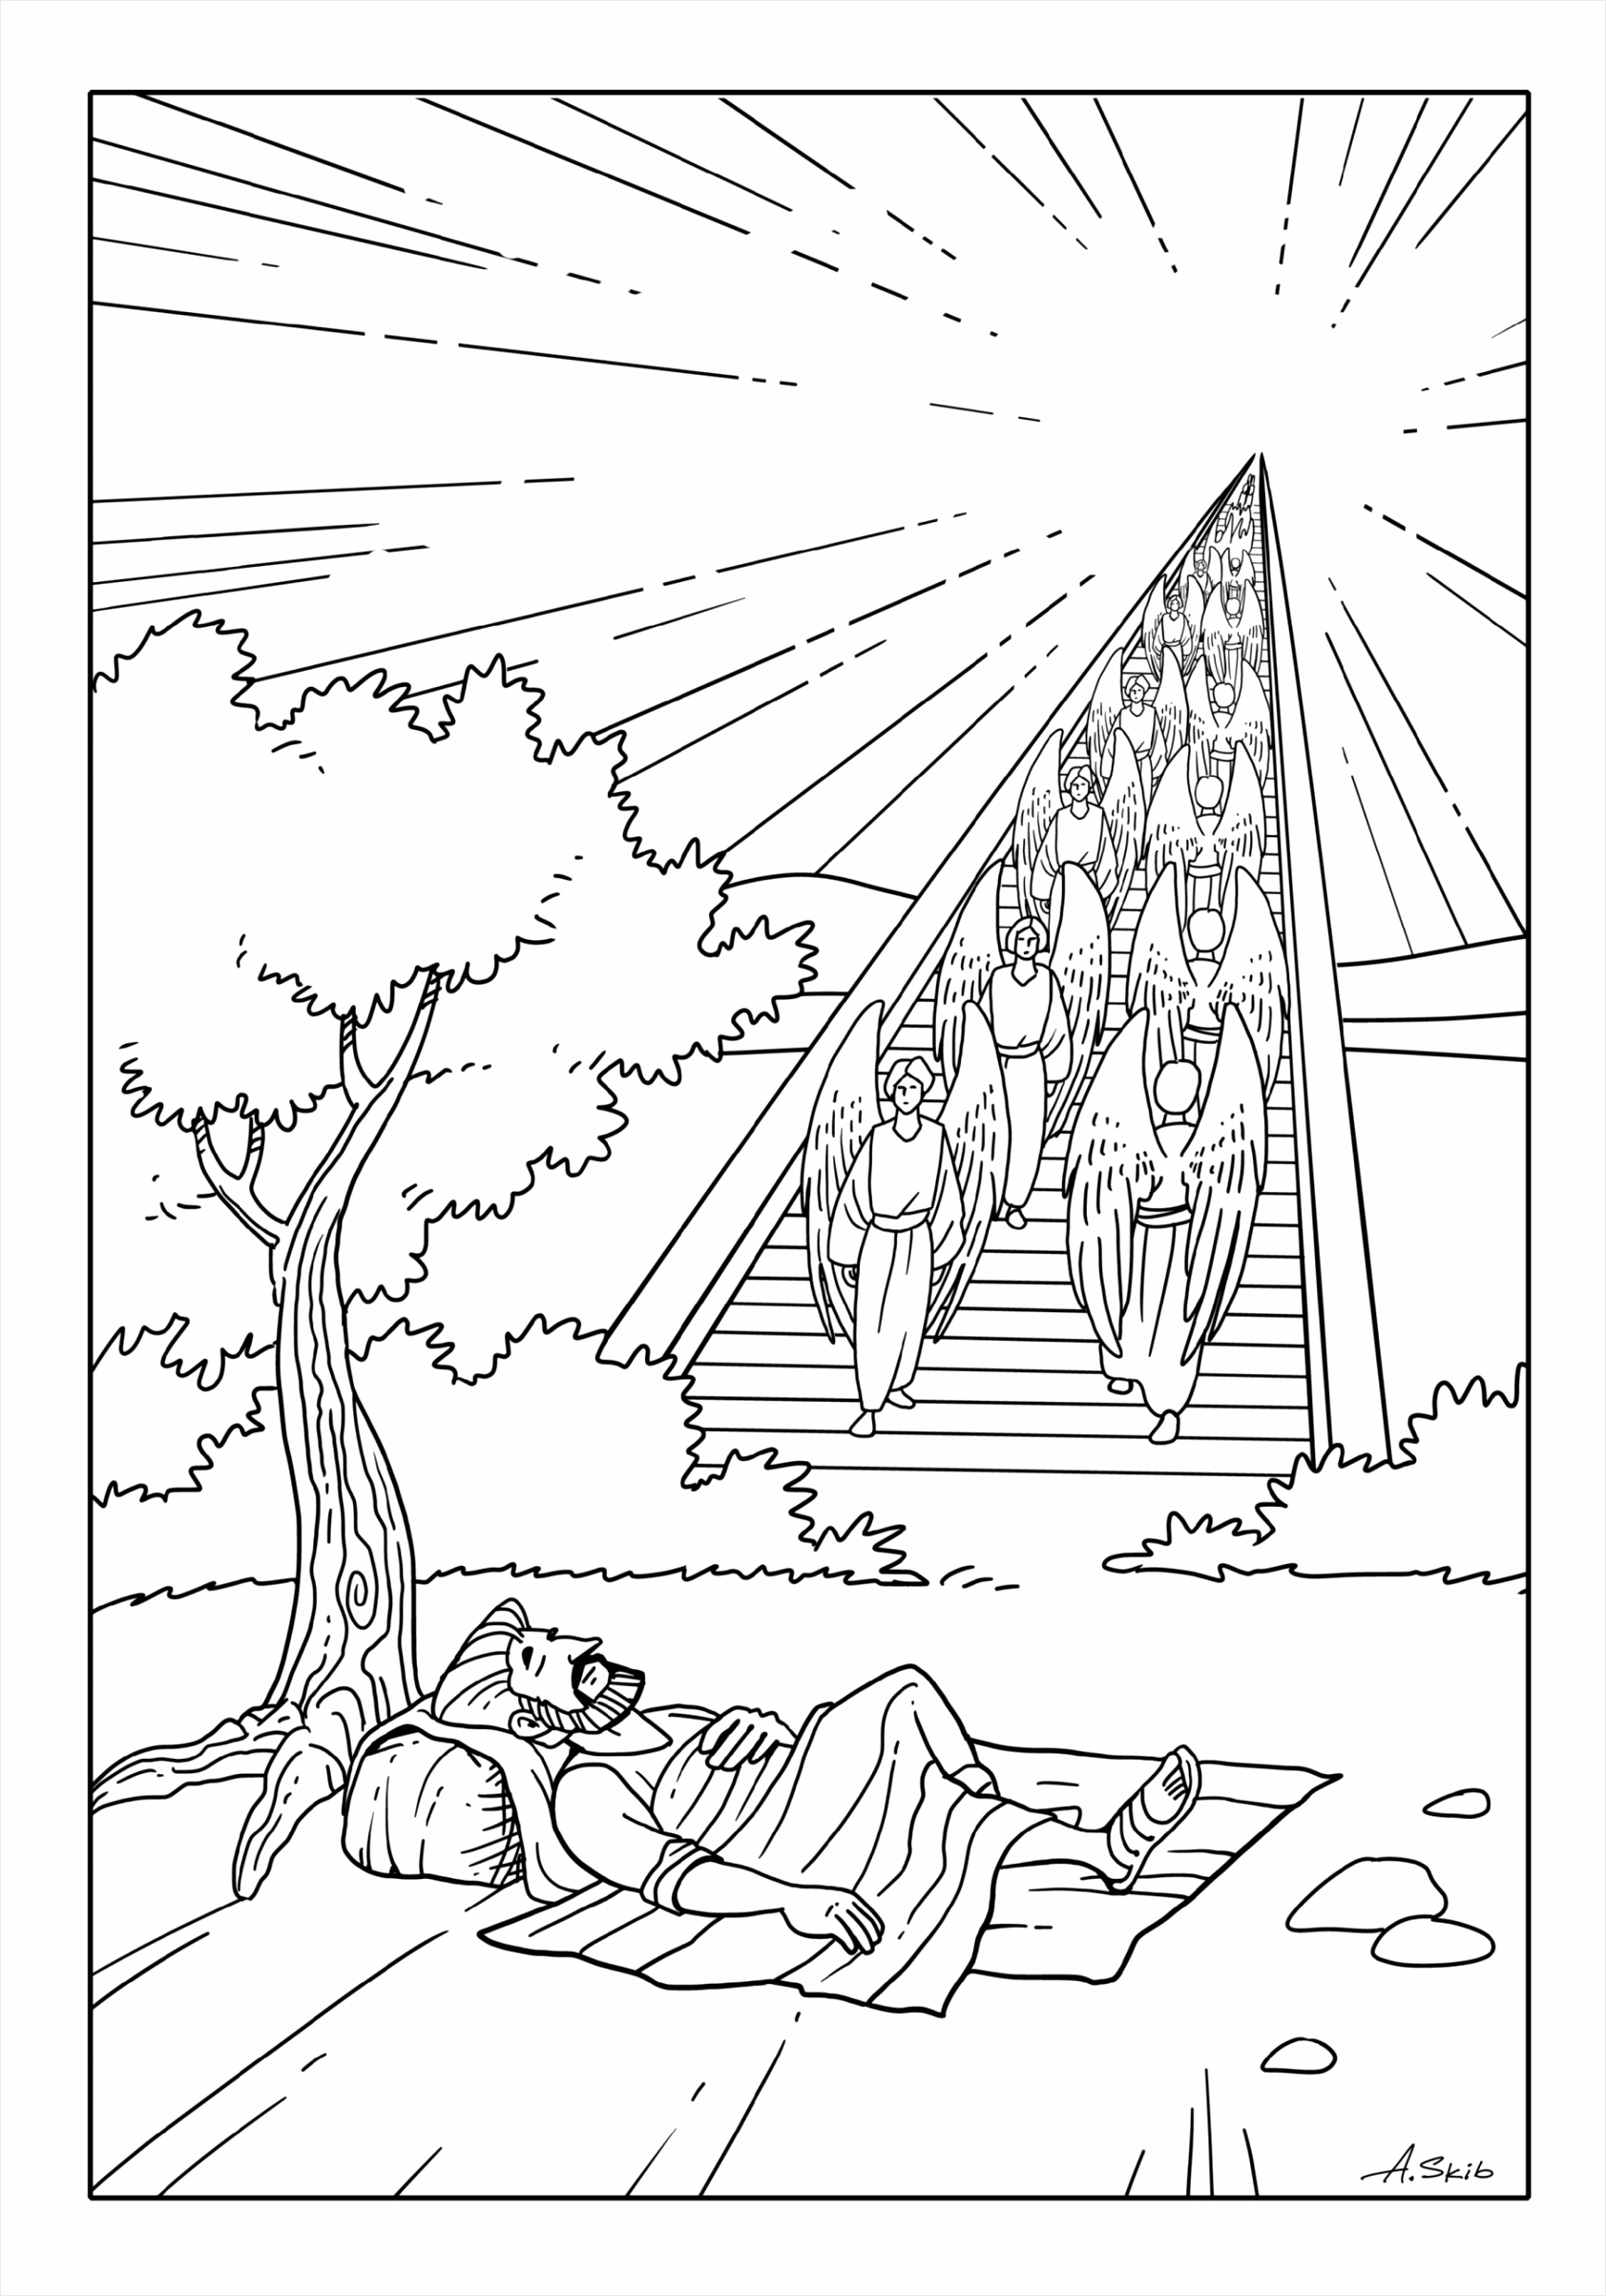 printable coloring pages bible stories ideas biblecoloring netmanagertemplatesbiblecoloring scaled igrut